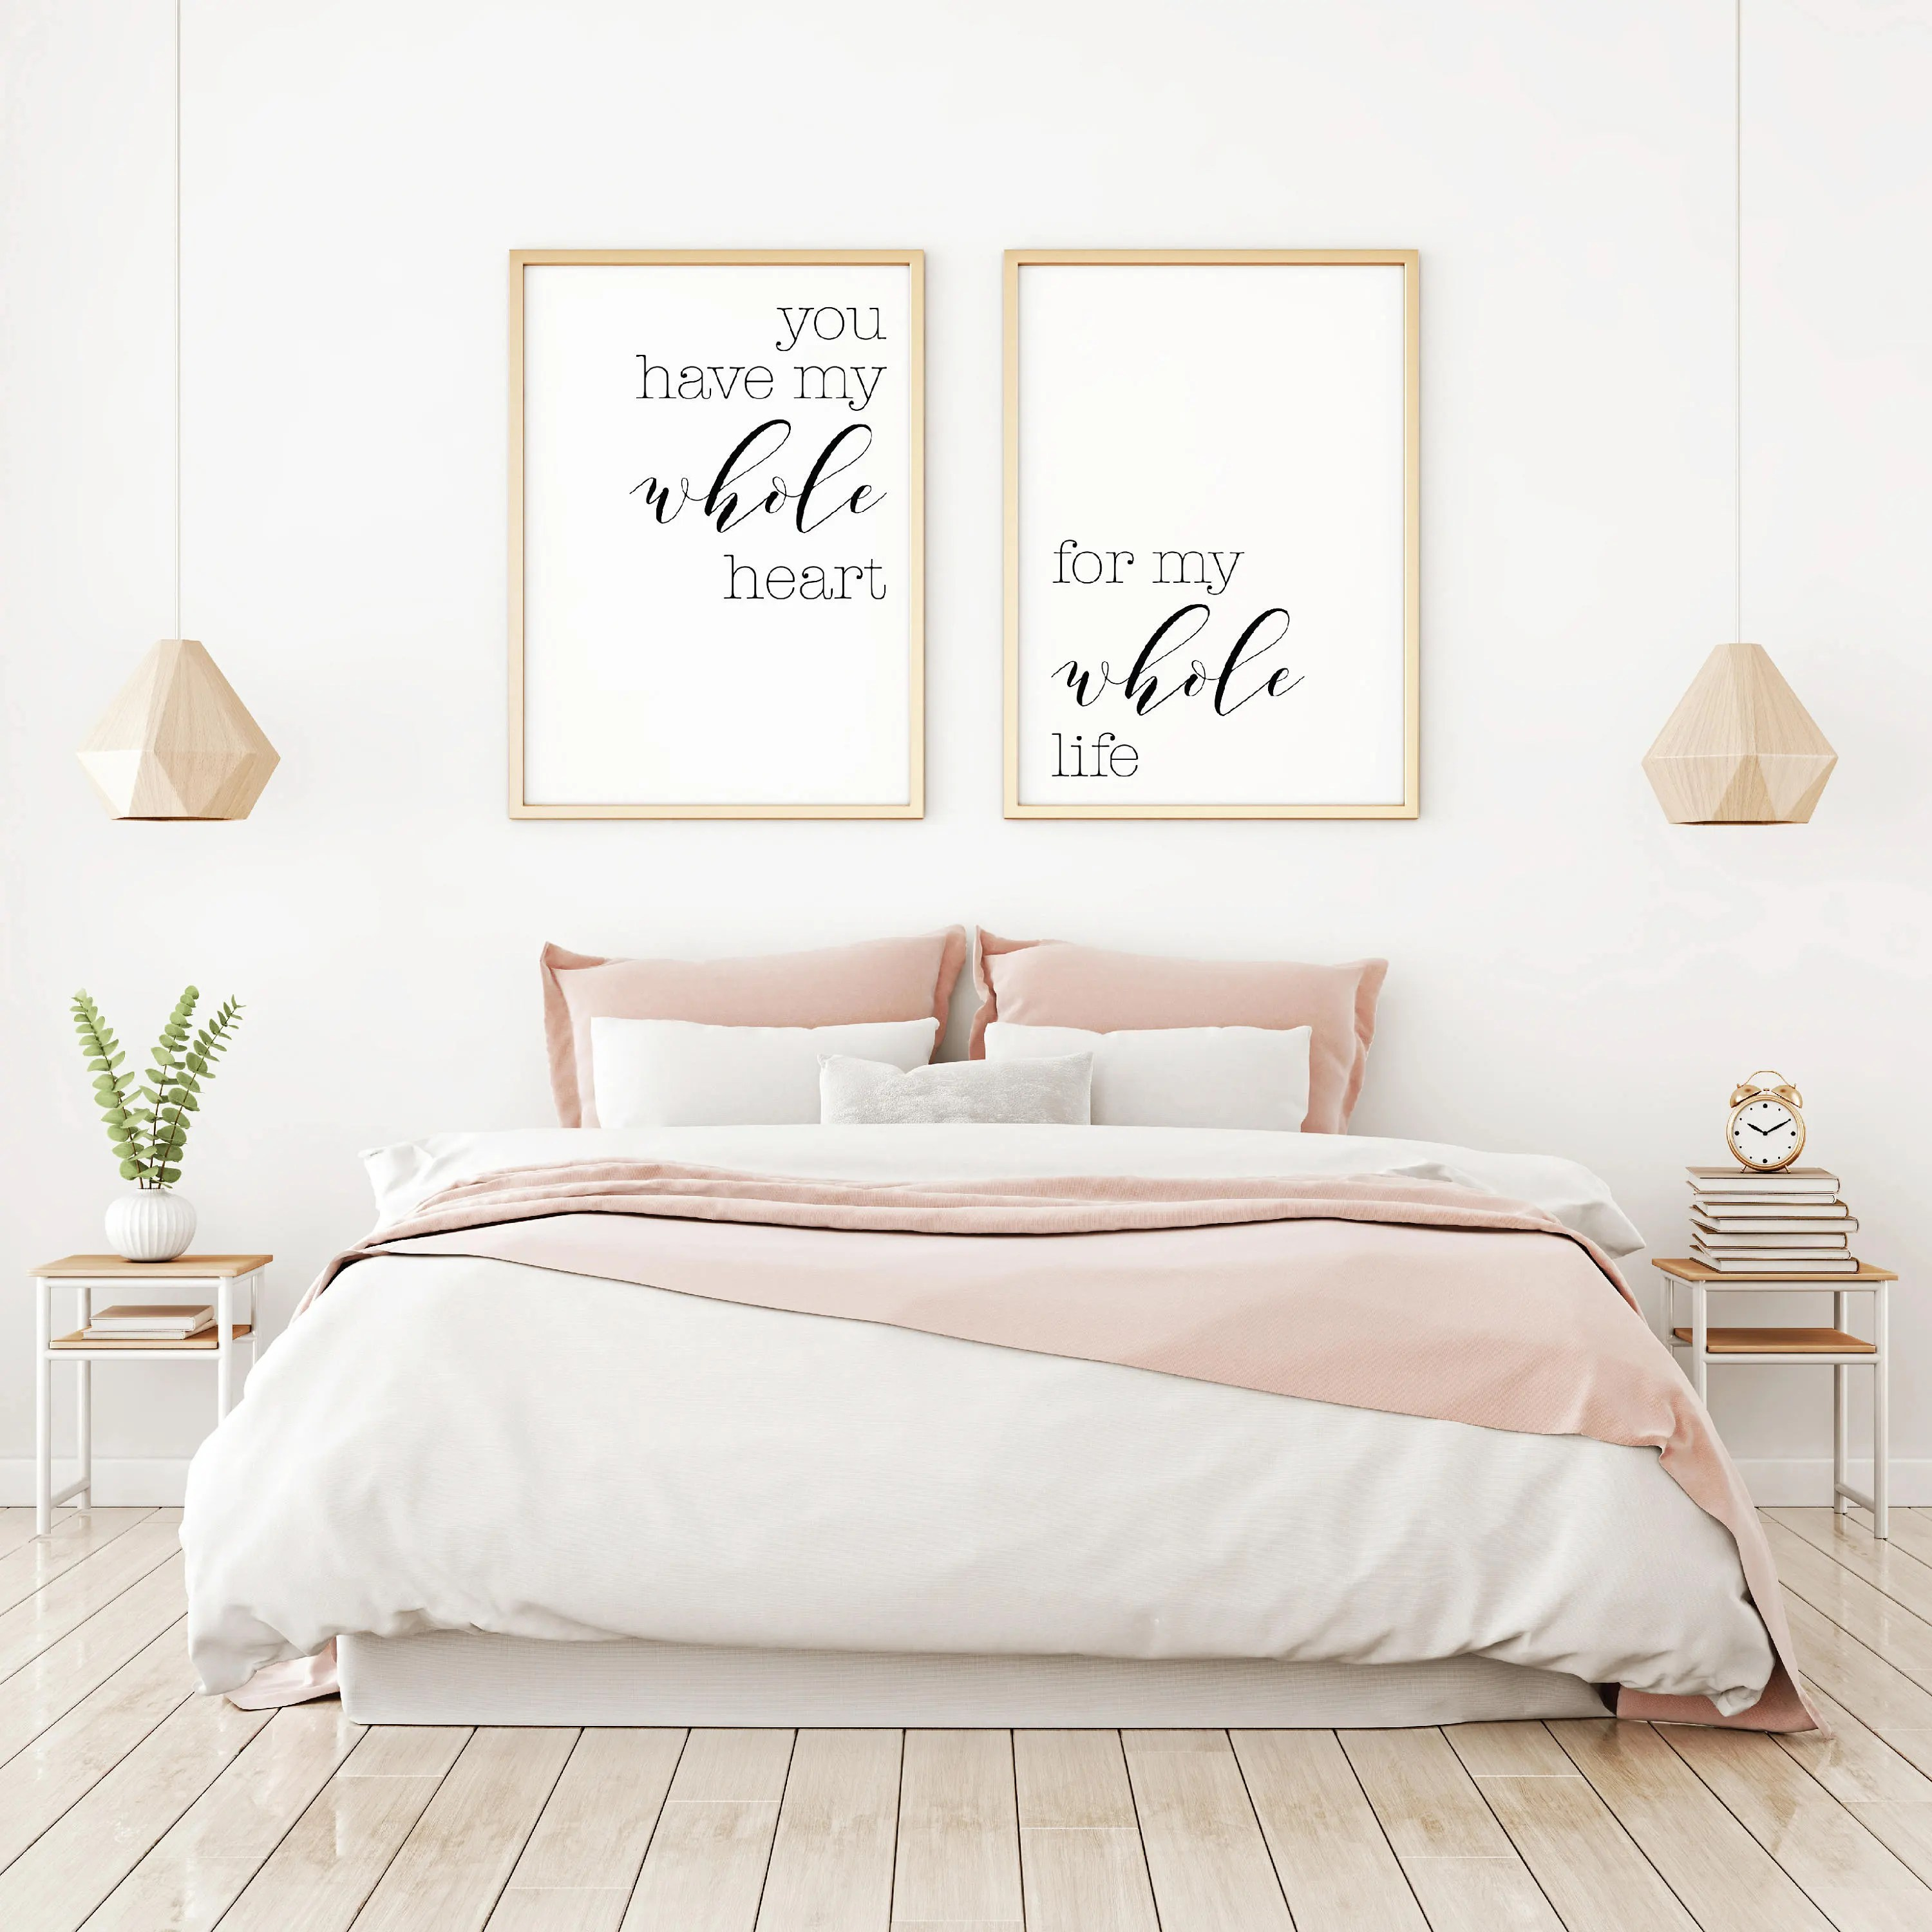 Best Bedroom Wall Decor Ideas Home Decor Wall Art Master This Month